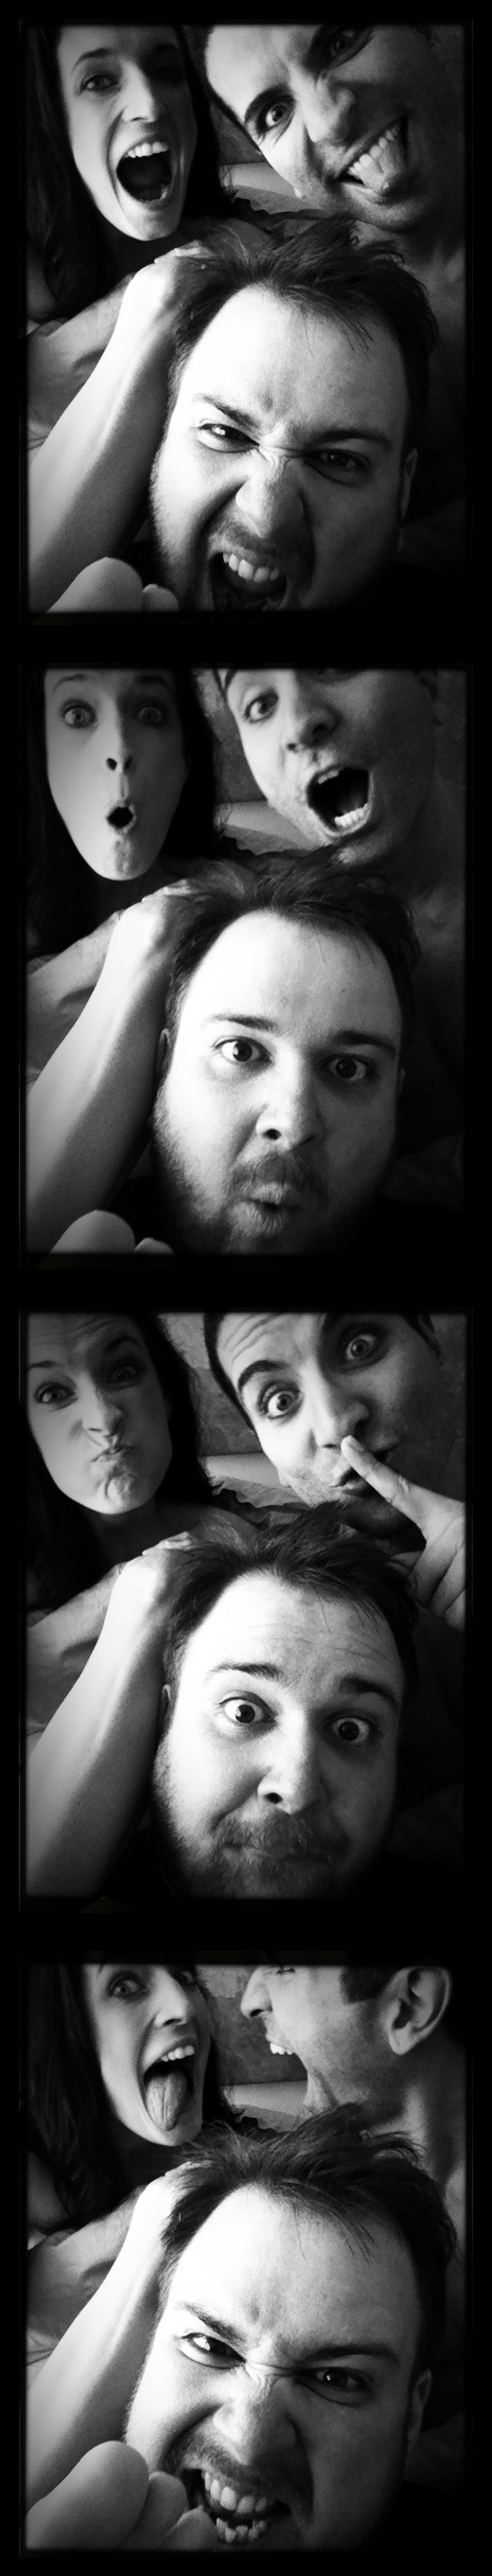 dReaMteaM - in an IncrediBooth - Fun © by Magistus